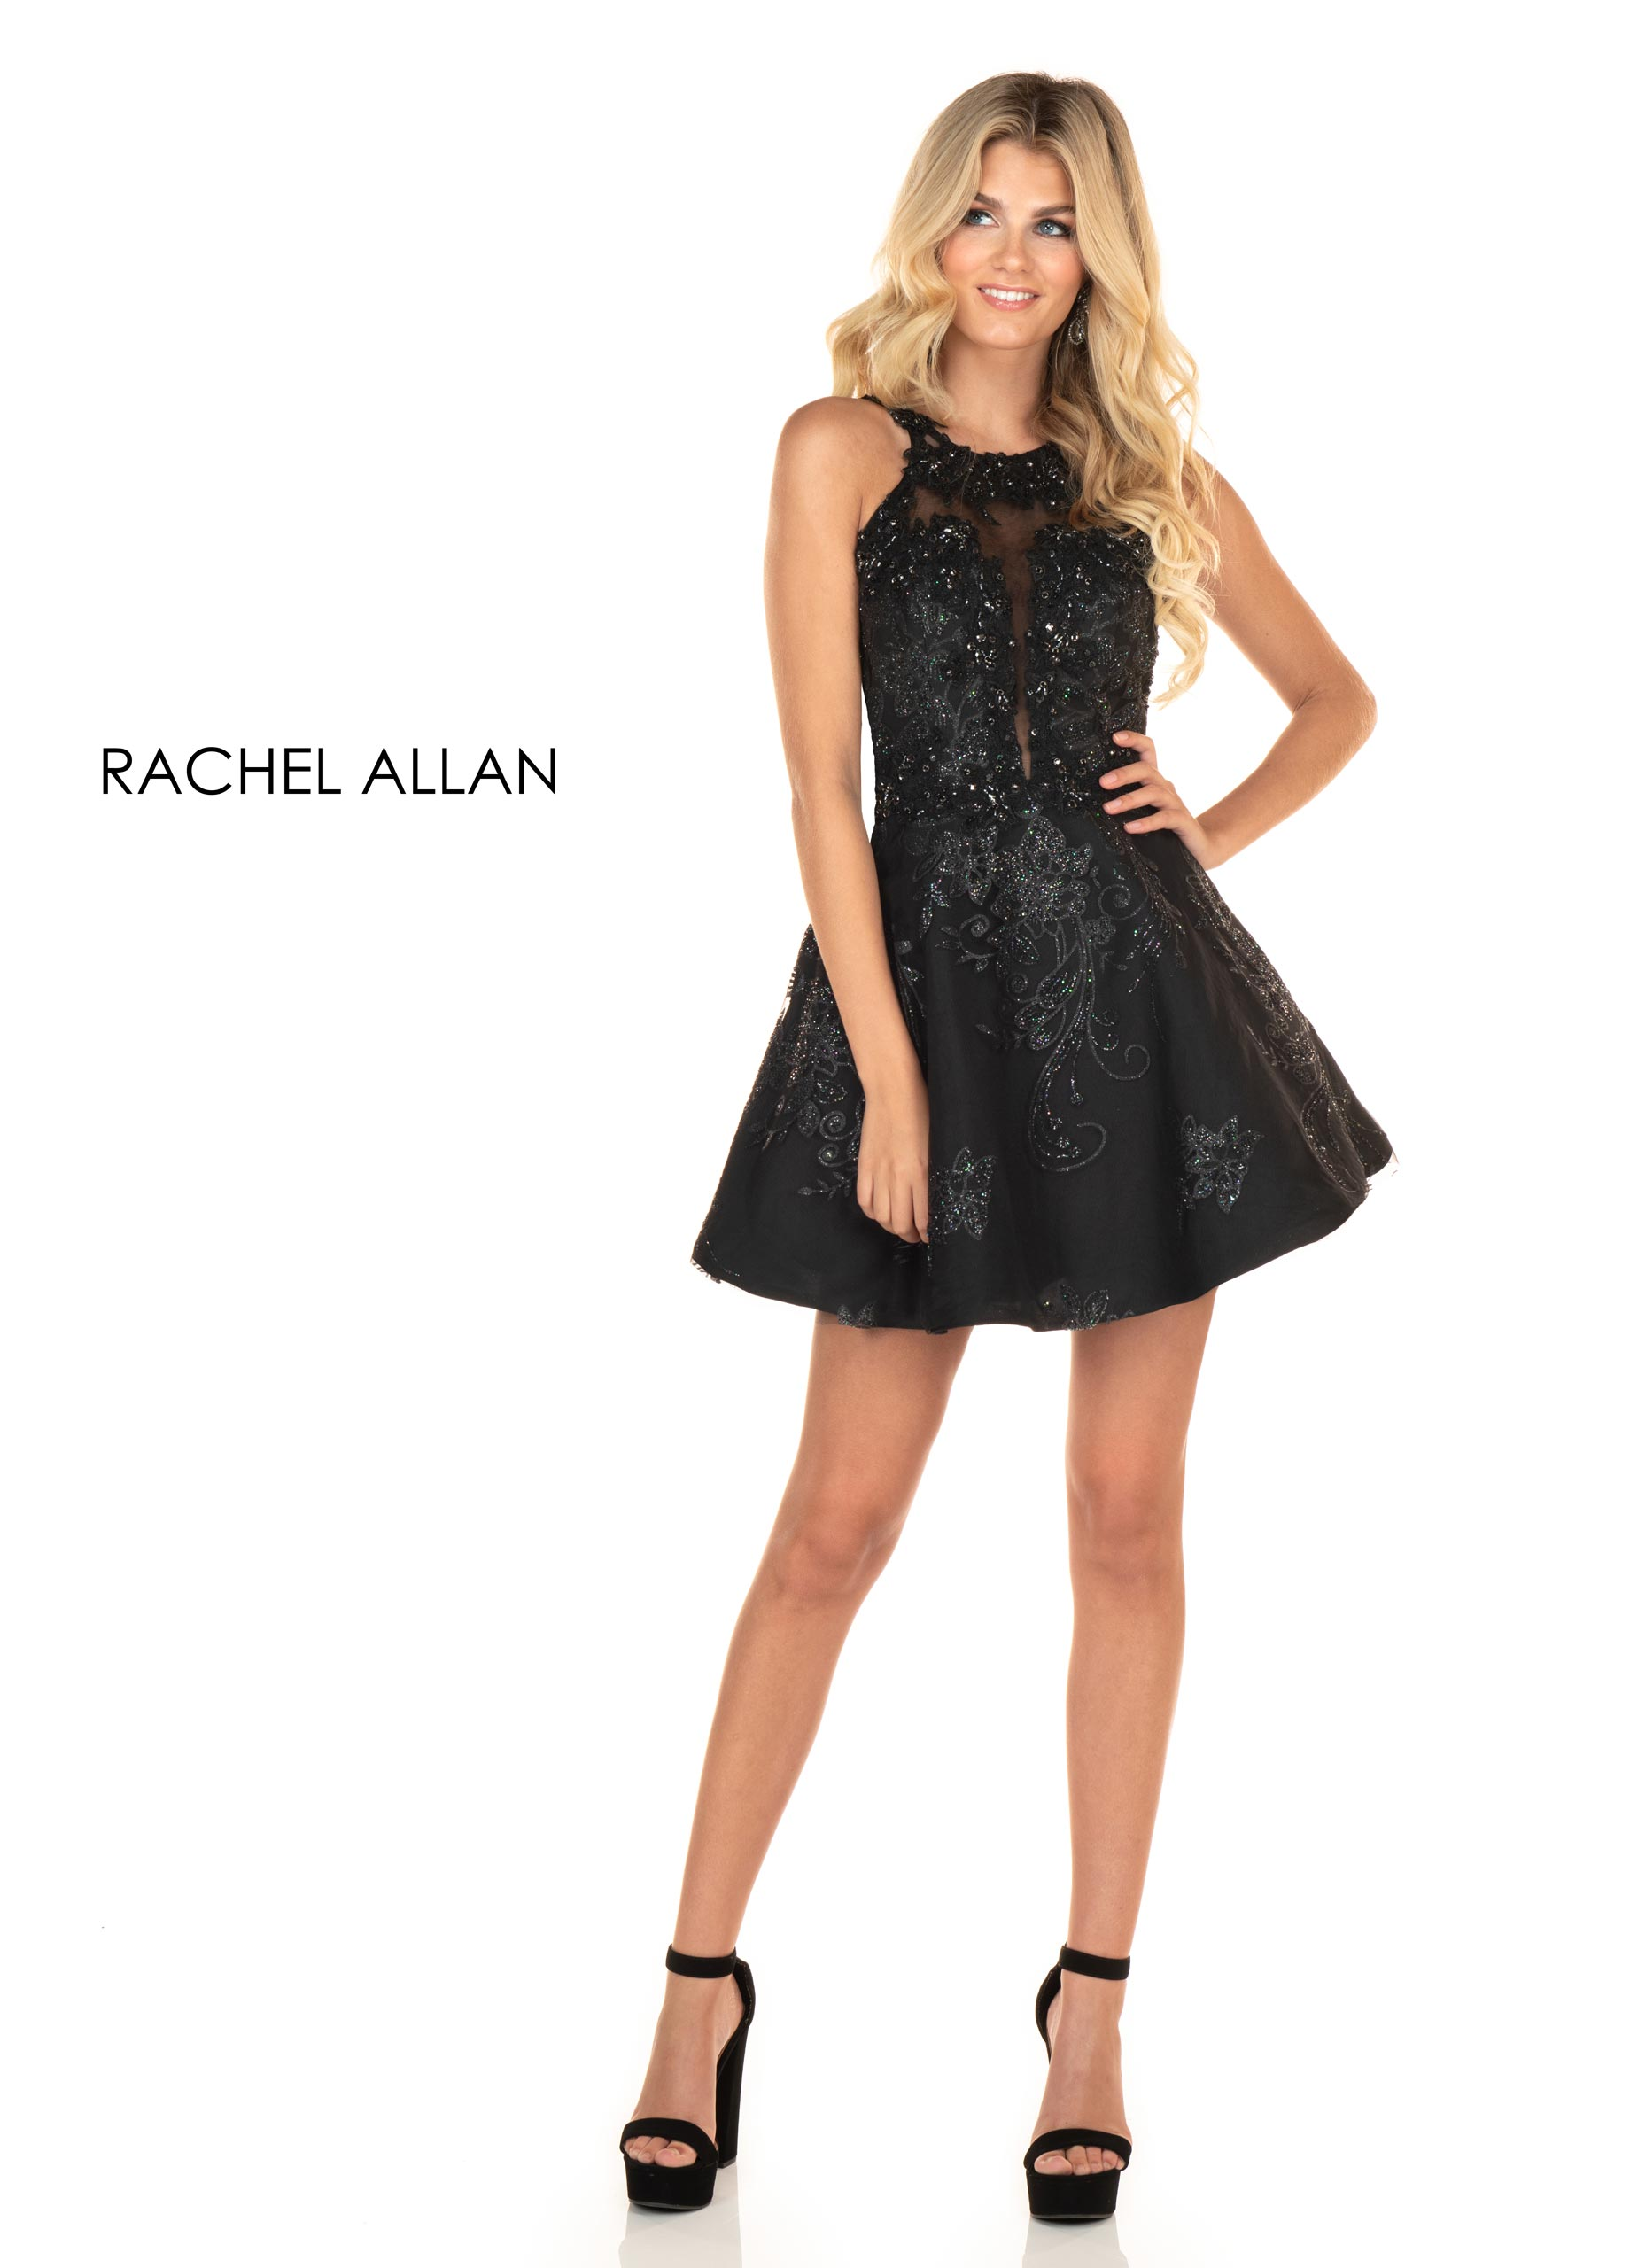 Halter A-Line Homecoming Dresses in Black Color